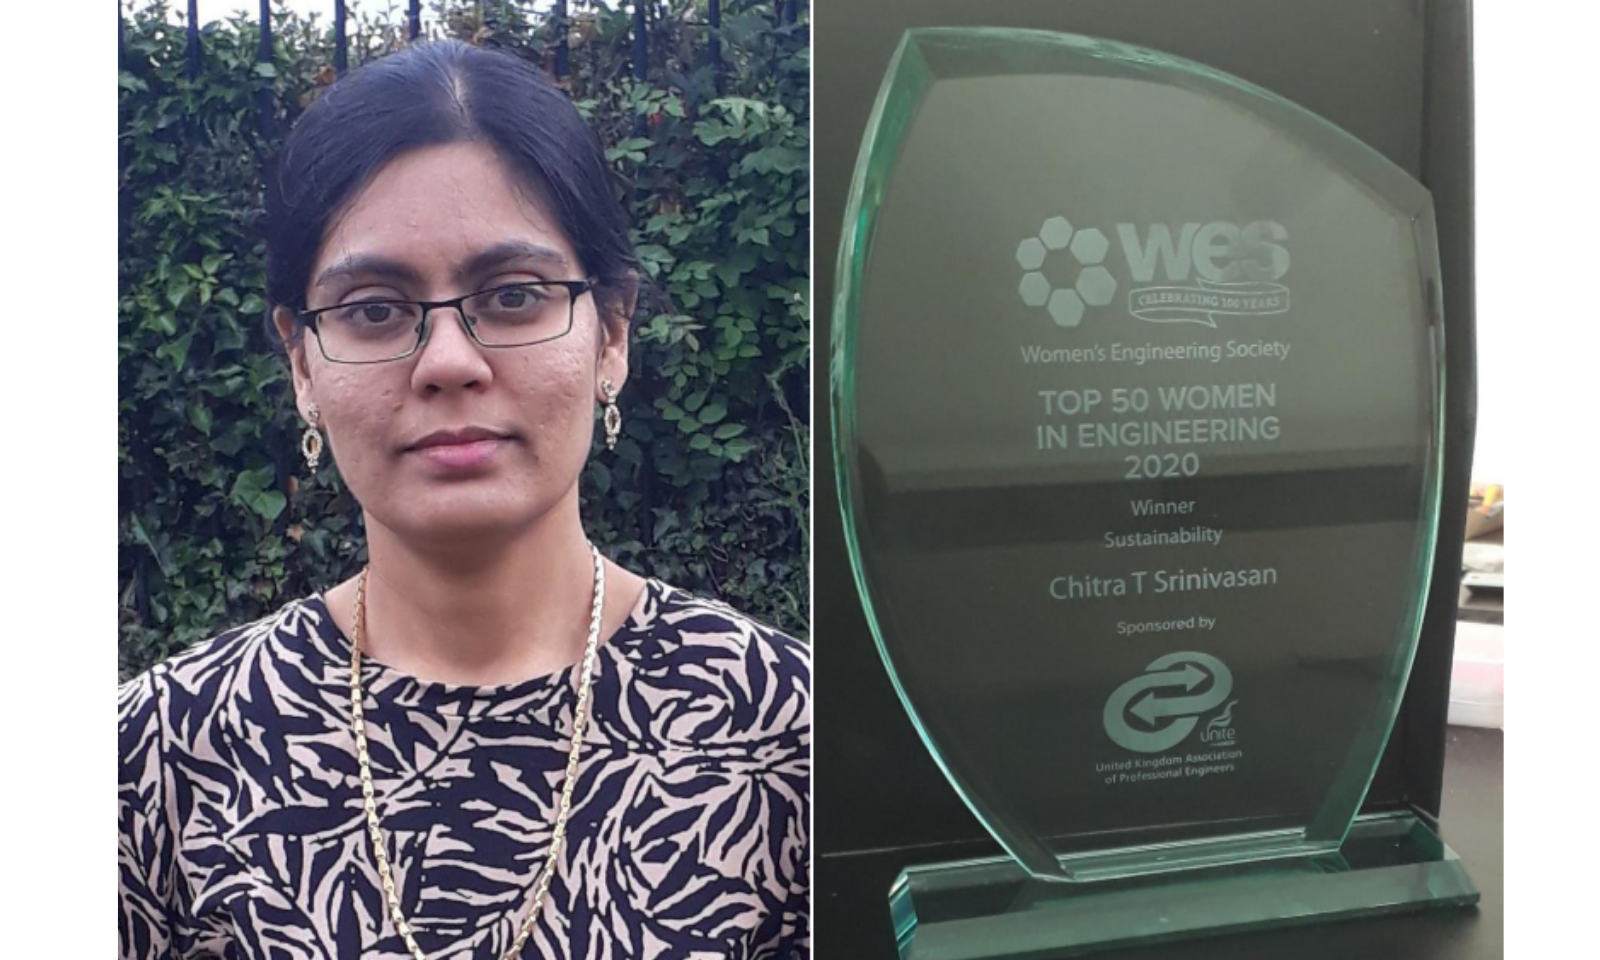 Fusion engineer Chitra Srinivasan has been named in the UK's Top 50 Women in Engineering for 2020.